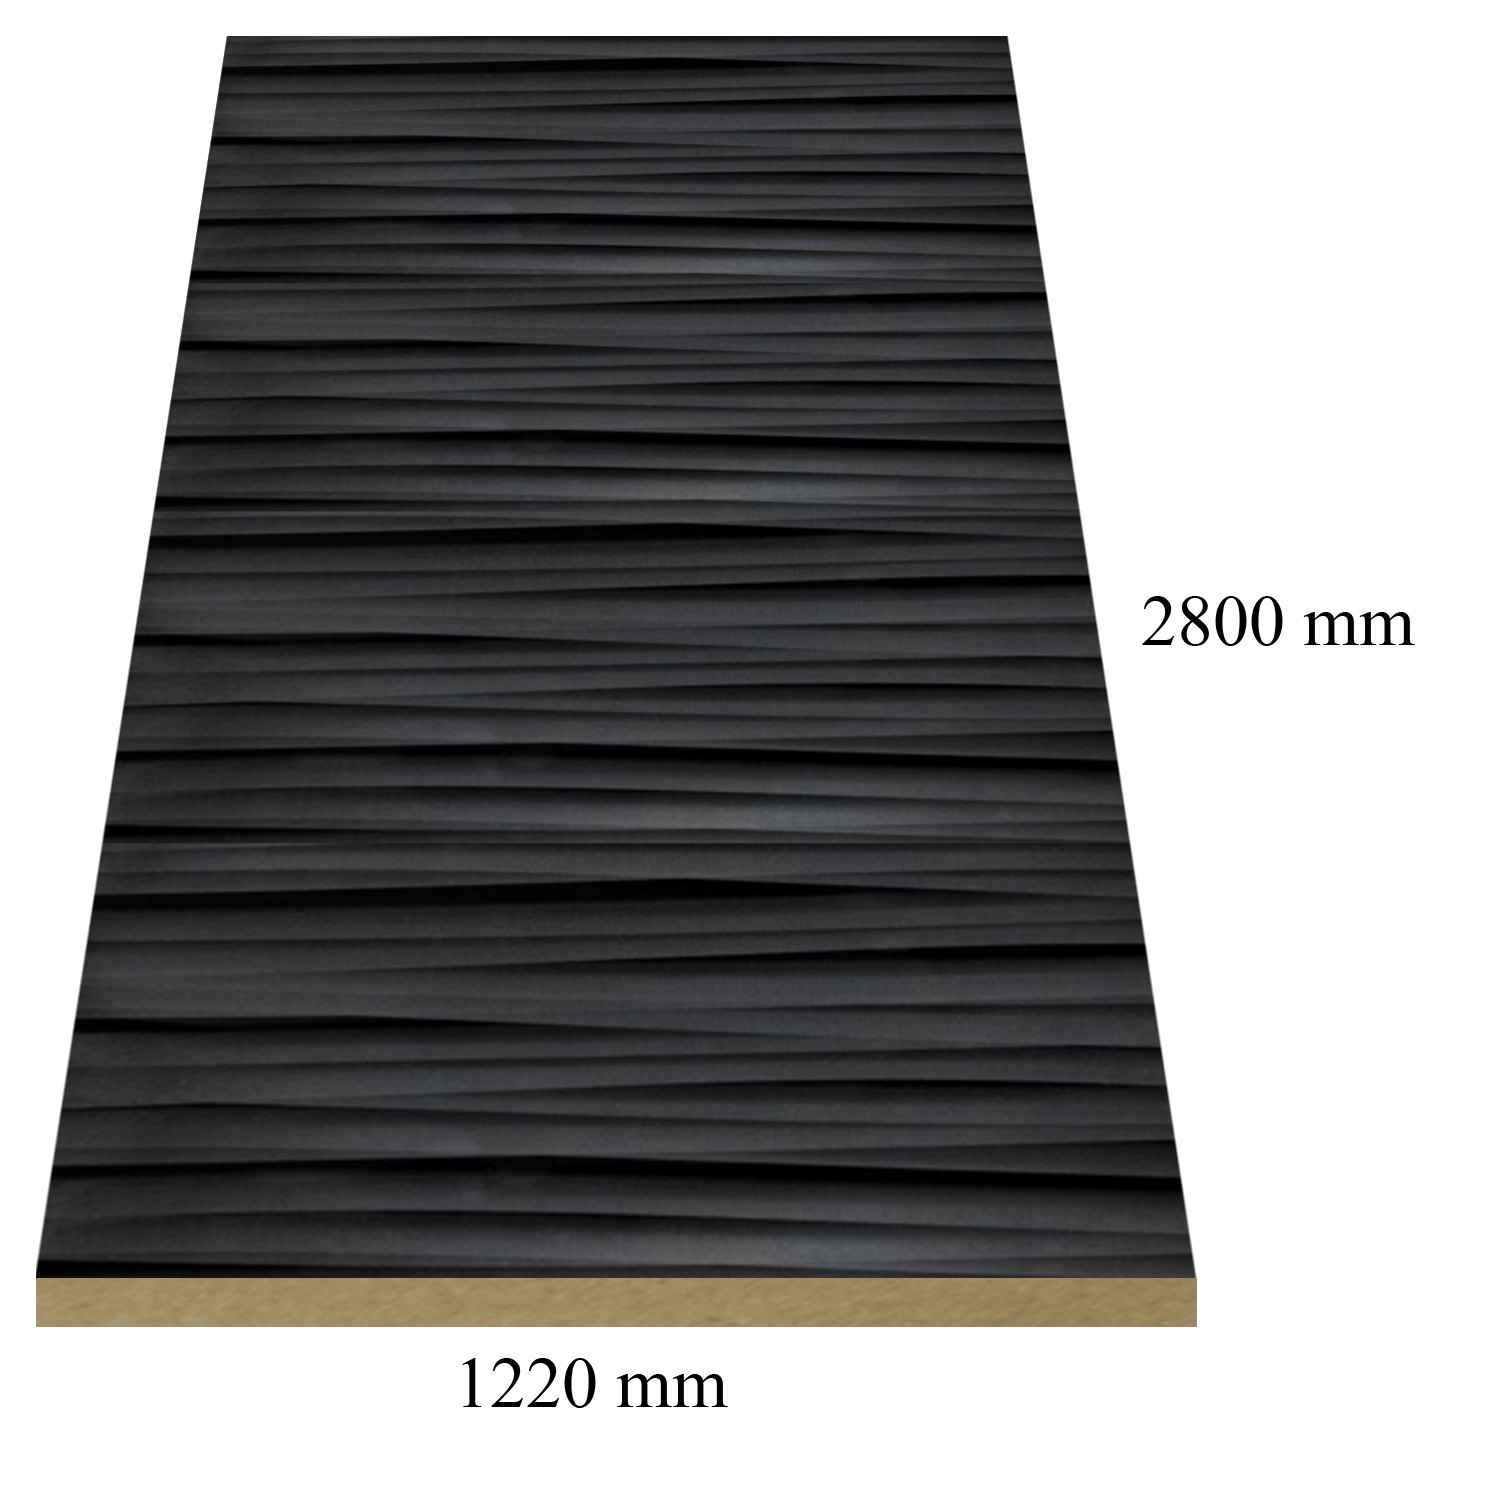 472 /6301 Sahara black high gloss - PVC coated 18 mm MDF